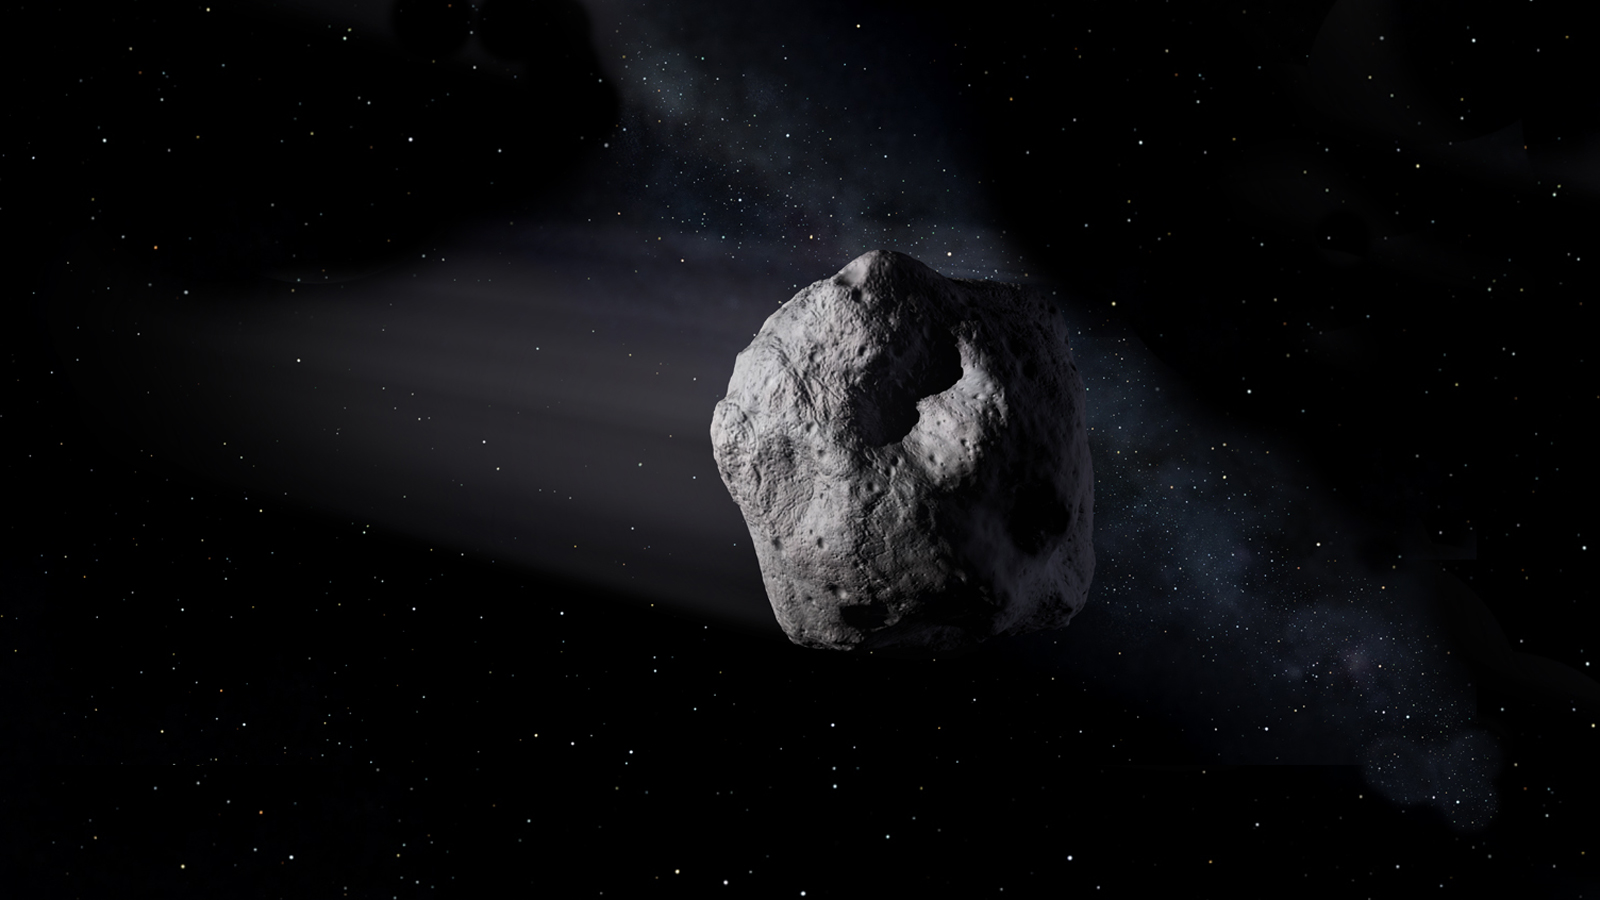 Large asteroid will fly by the Earth next month, but won't hit us, NASA says